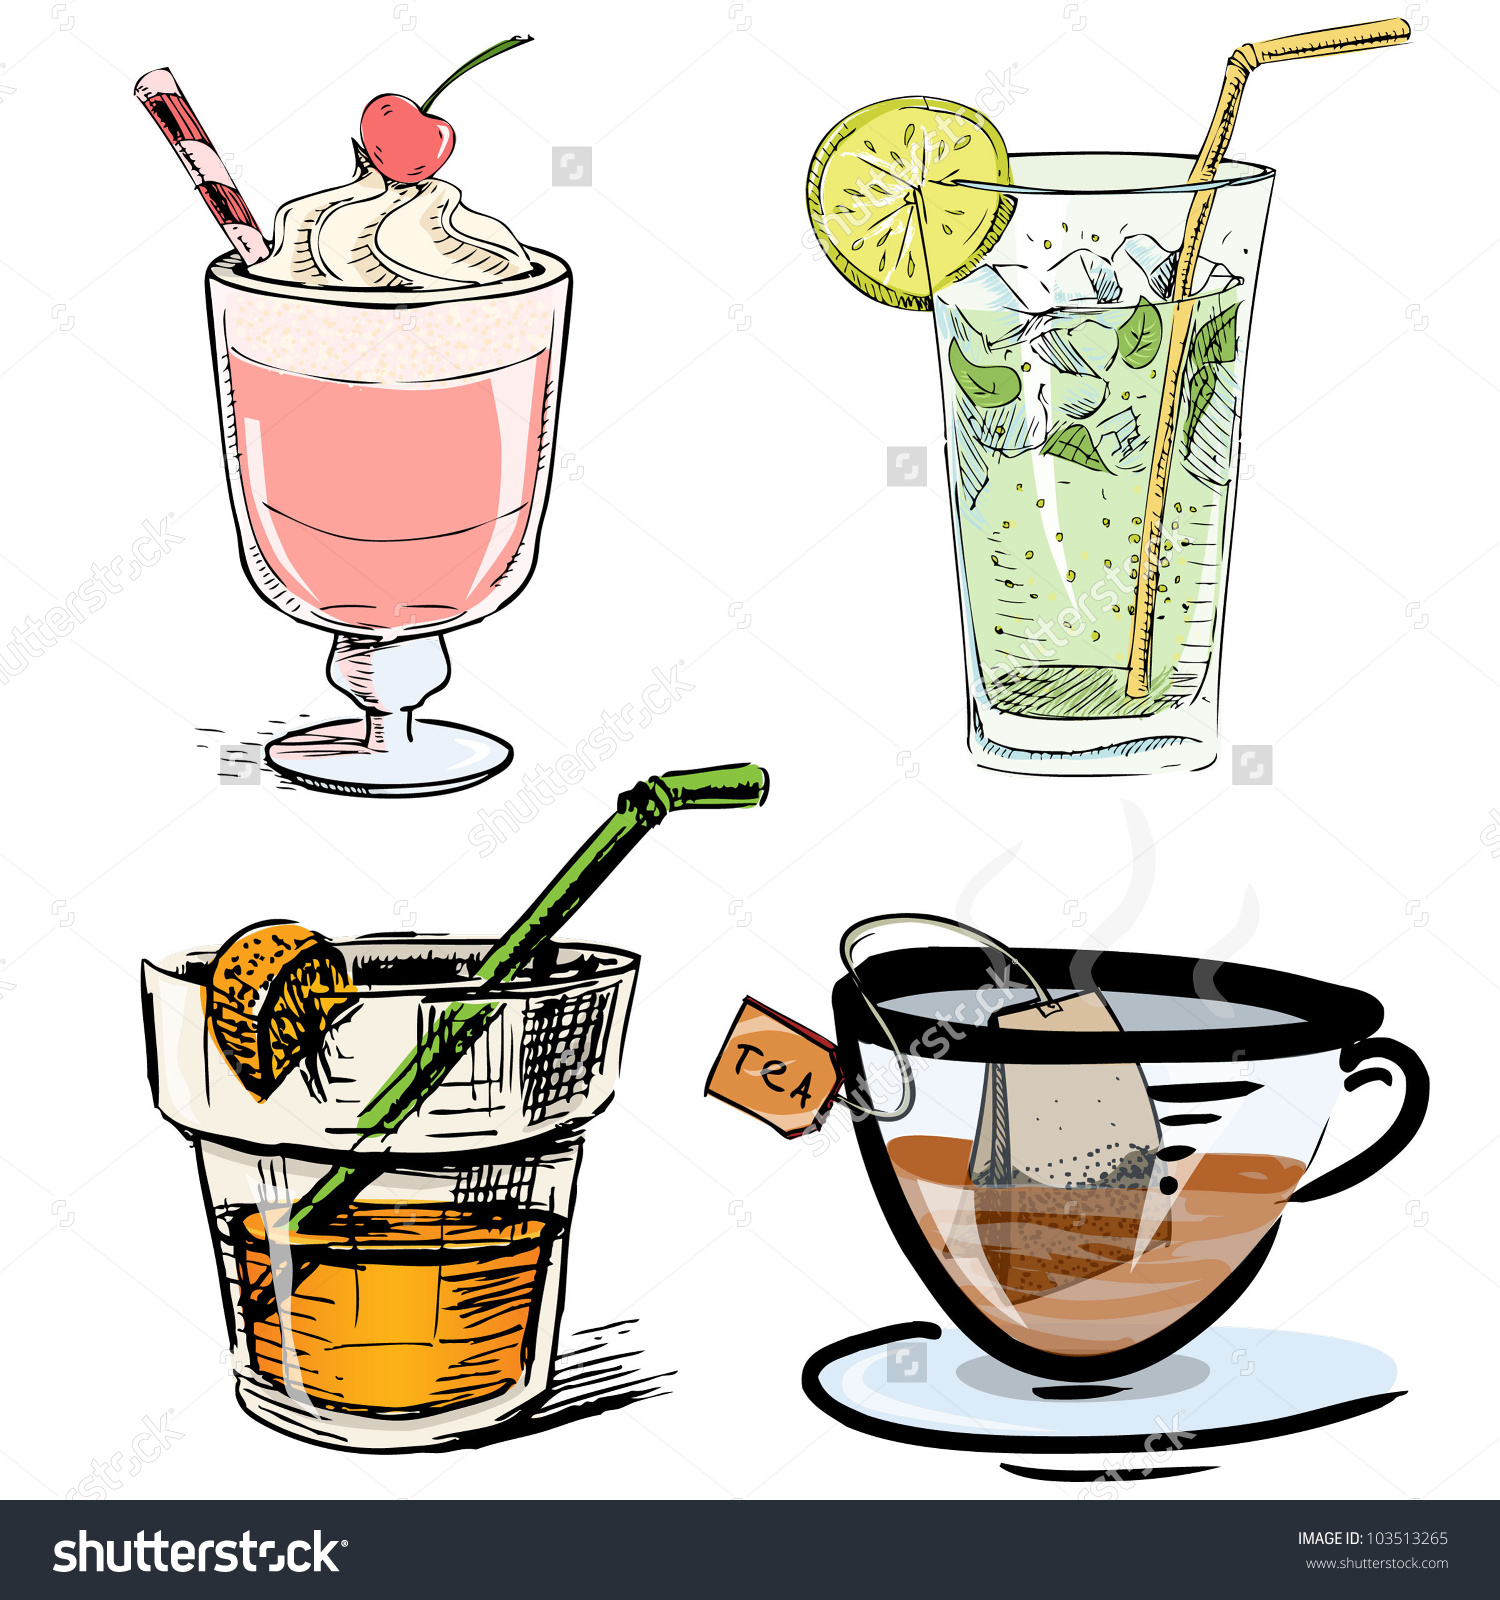 Non-alcoholic drink clipart - Clipground